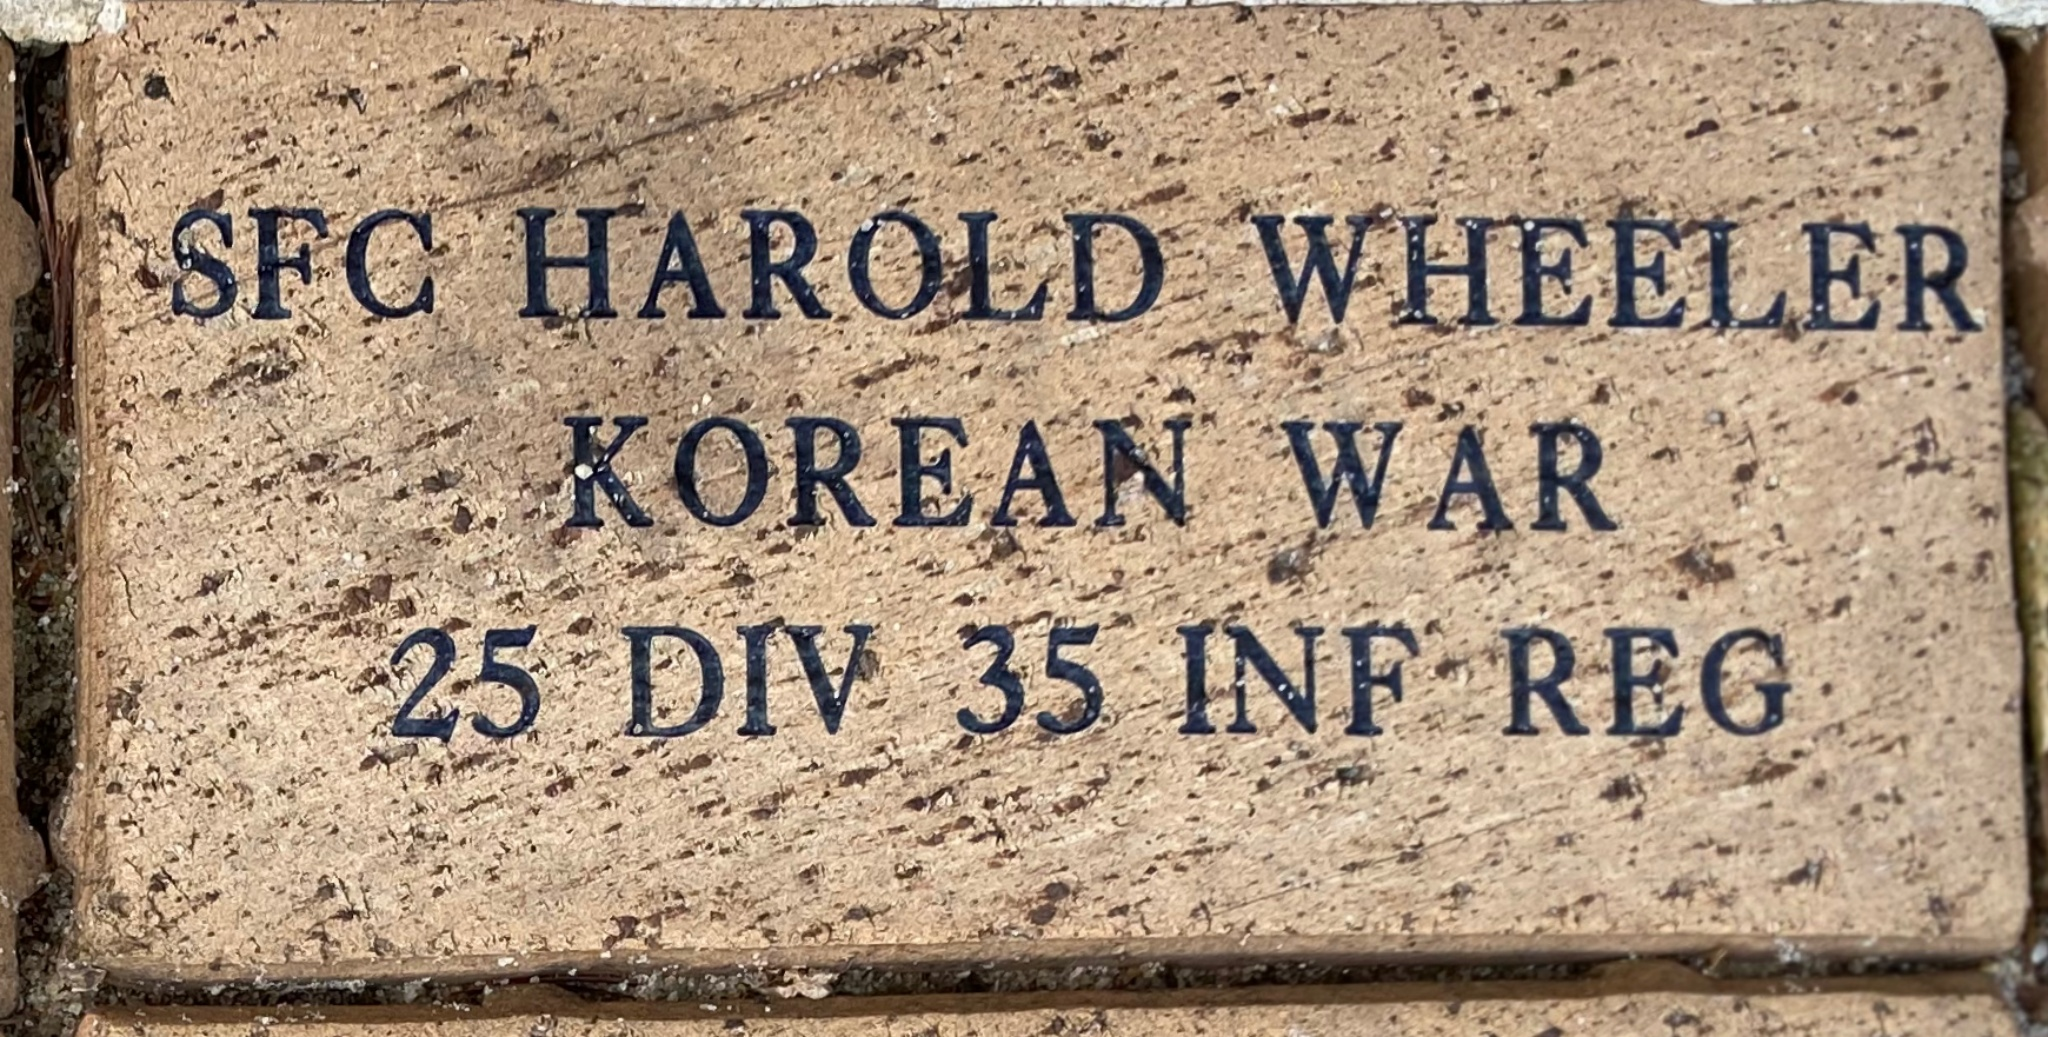 SFC HAROLD E WHEELER KOREAN WAR 25 DIV 35 INF REG